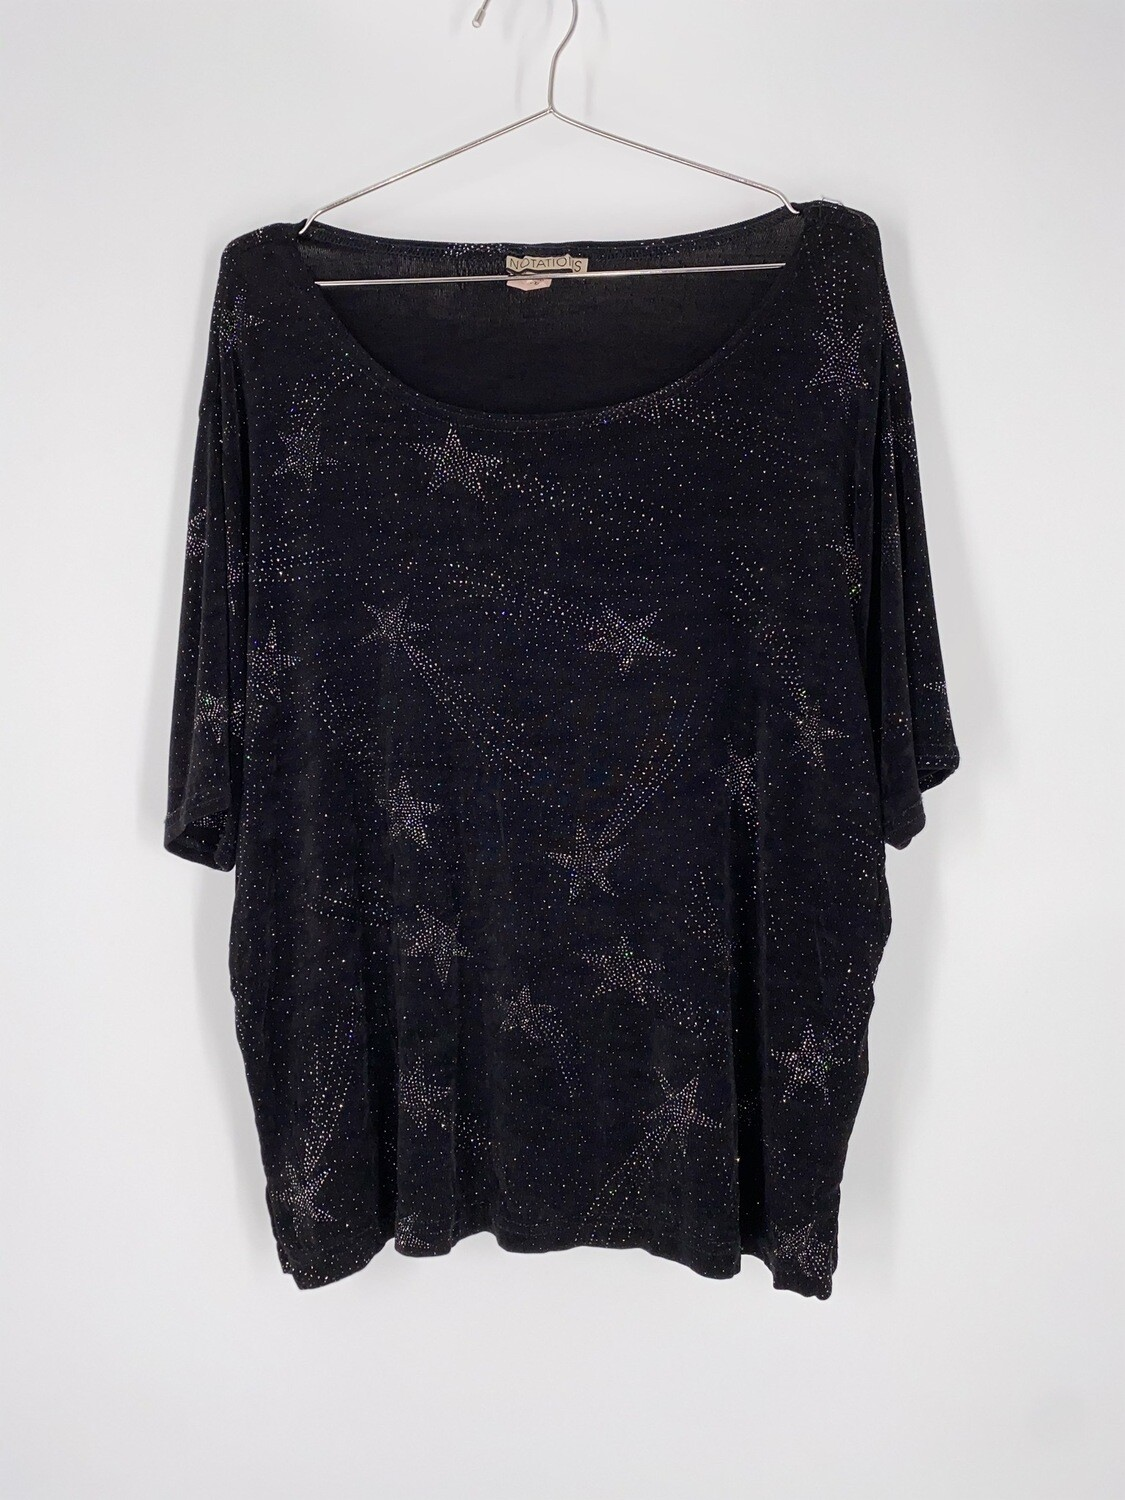 Notations Shooting Star Short Sleeve Top Size L